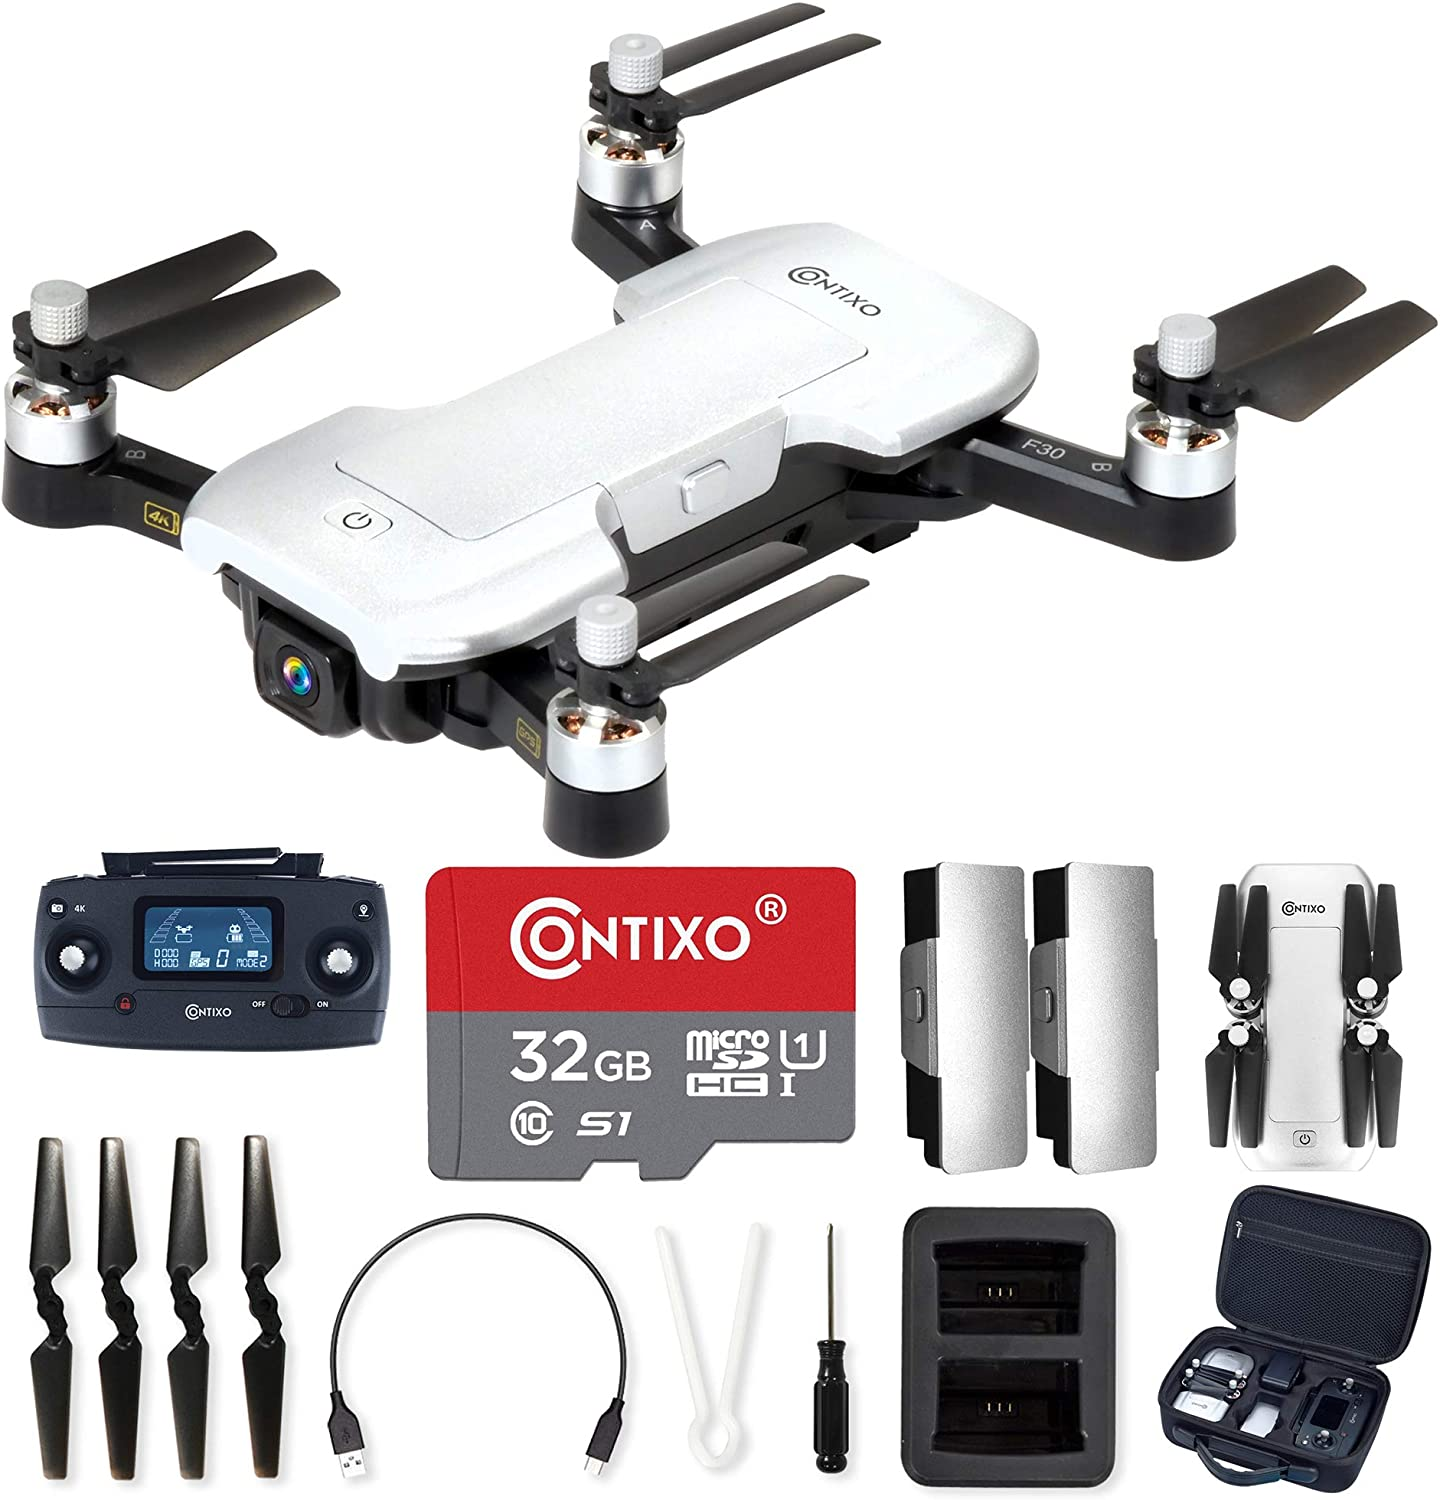 Contixo F30 Drone for Kids & Adults WiFi 4K UHD Camera and GPS, FPV Quadcopter for Beginners, Foldable Mini Drone, Brushless Motor, Follow Me, Two Batteries and Carrying Case Included